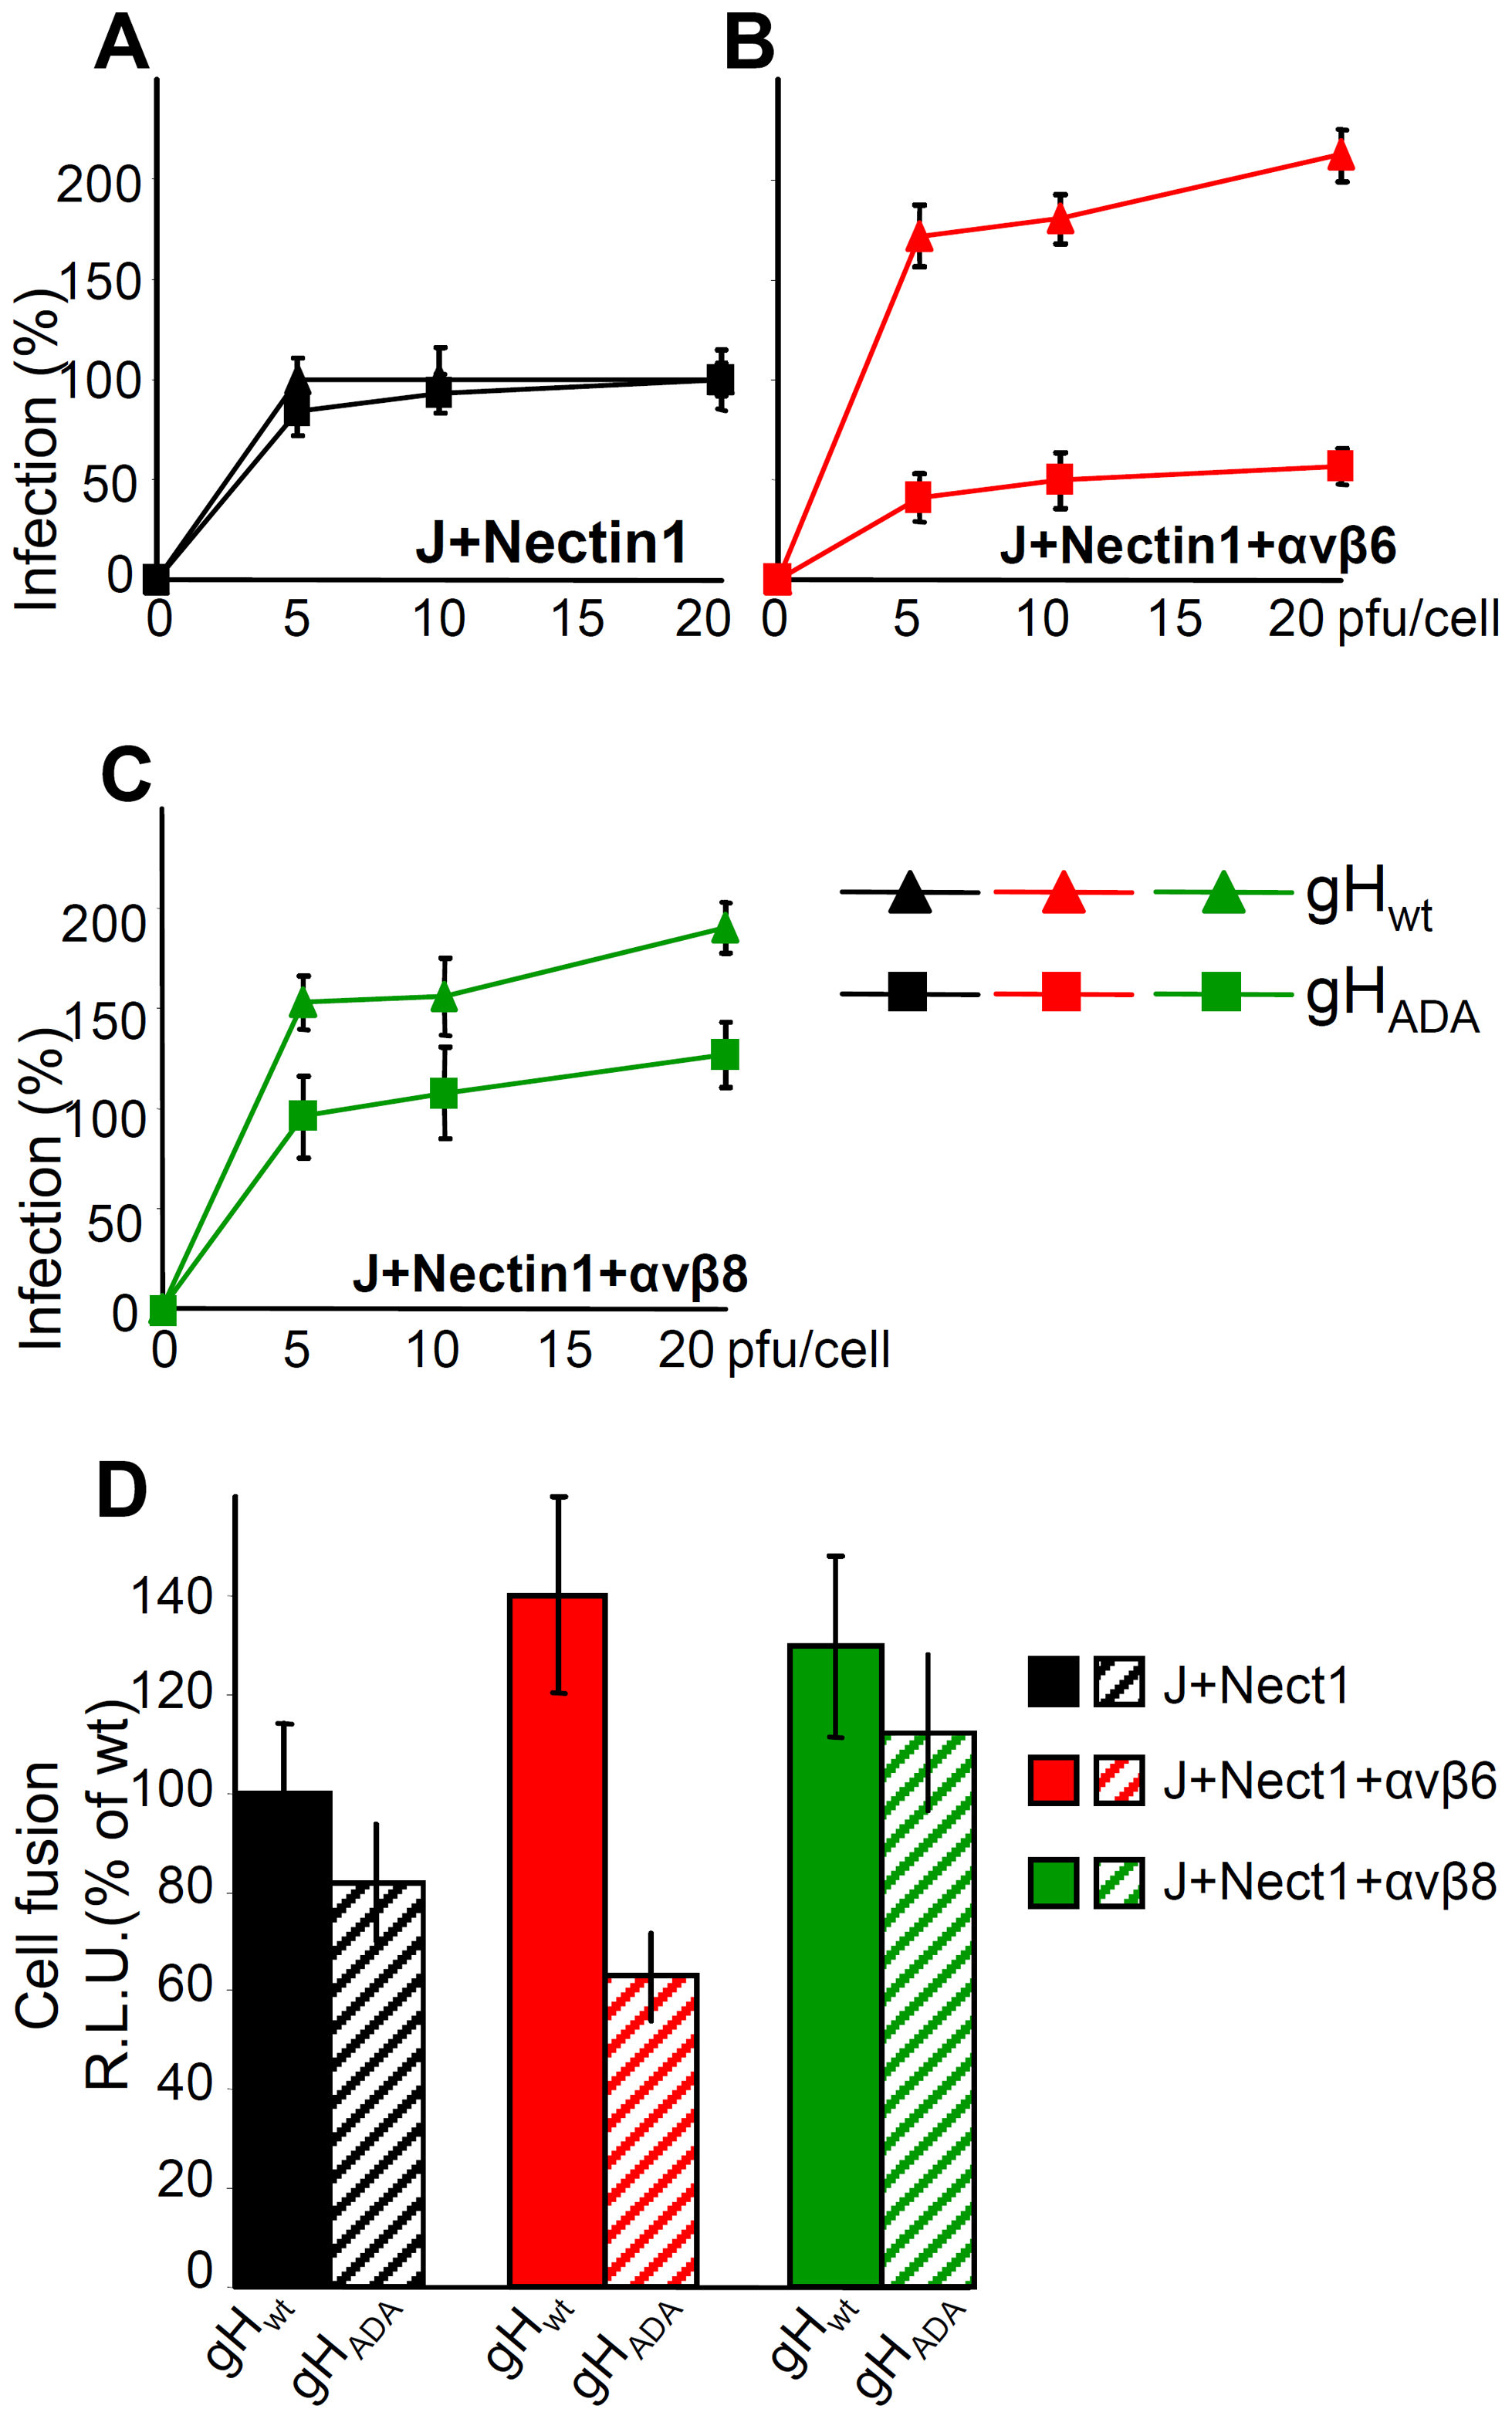 The RGD motif in gH is required for HSV infection and cell-cell fusion mediated by αvβ6–integrin, but not by αvβ8–integrin.